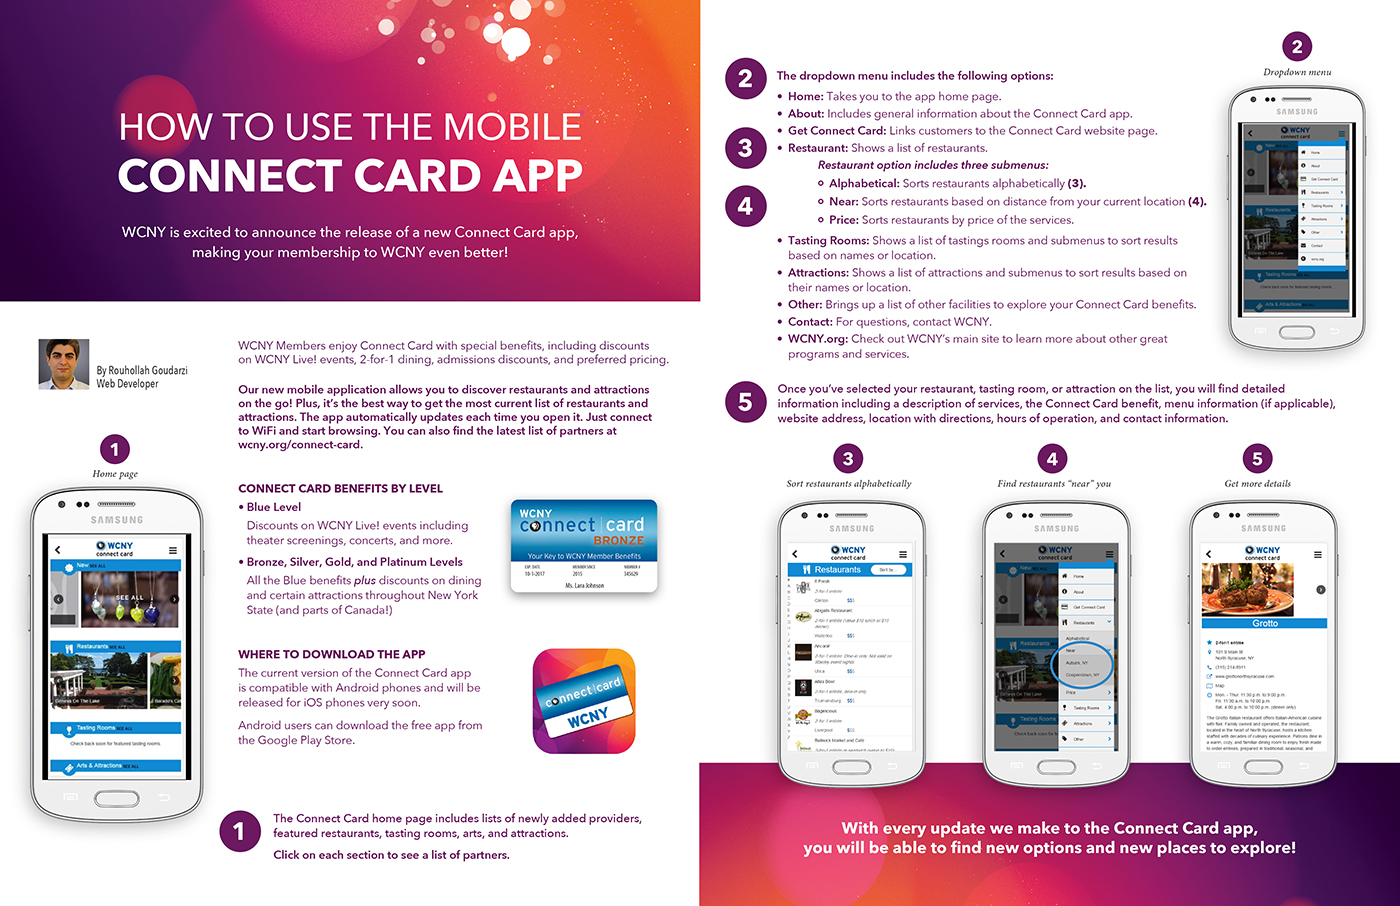 cnnect_card_app_spread2